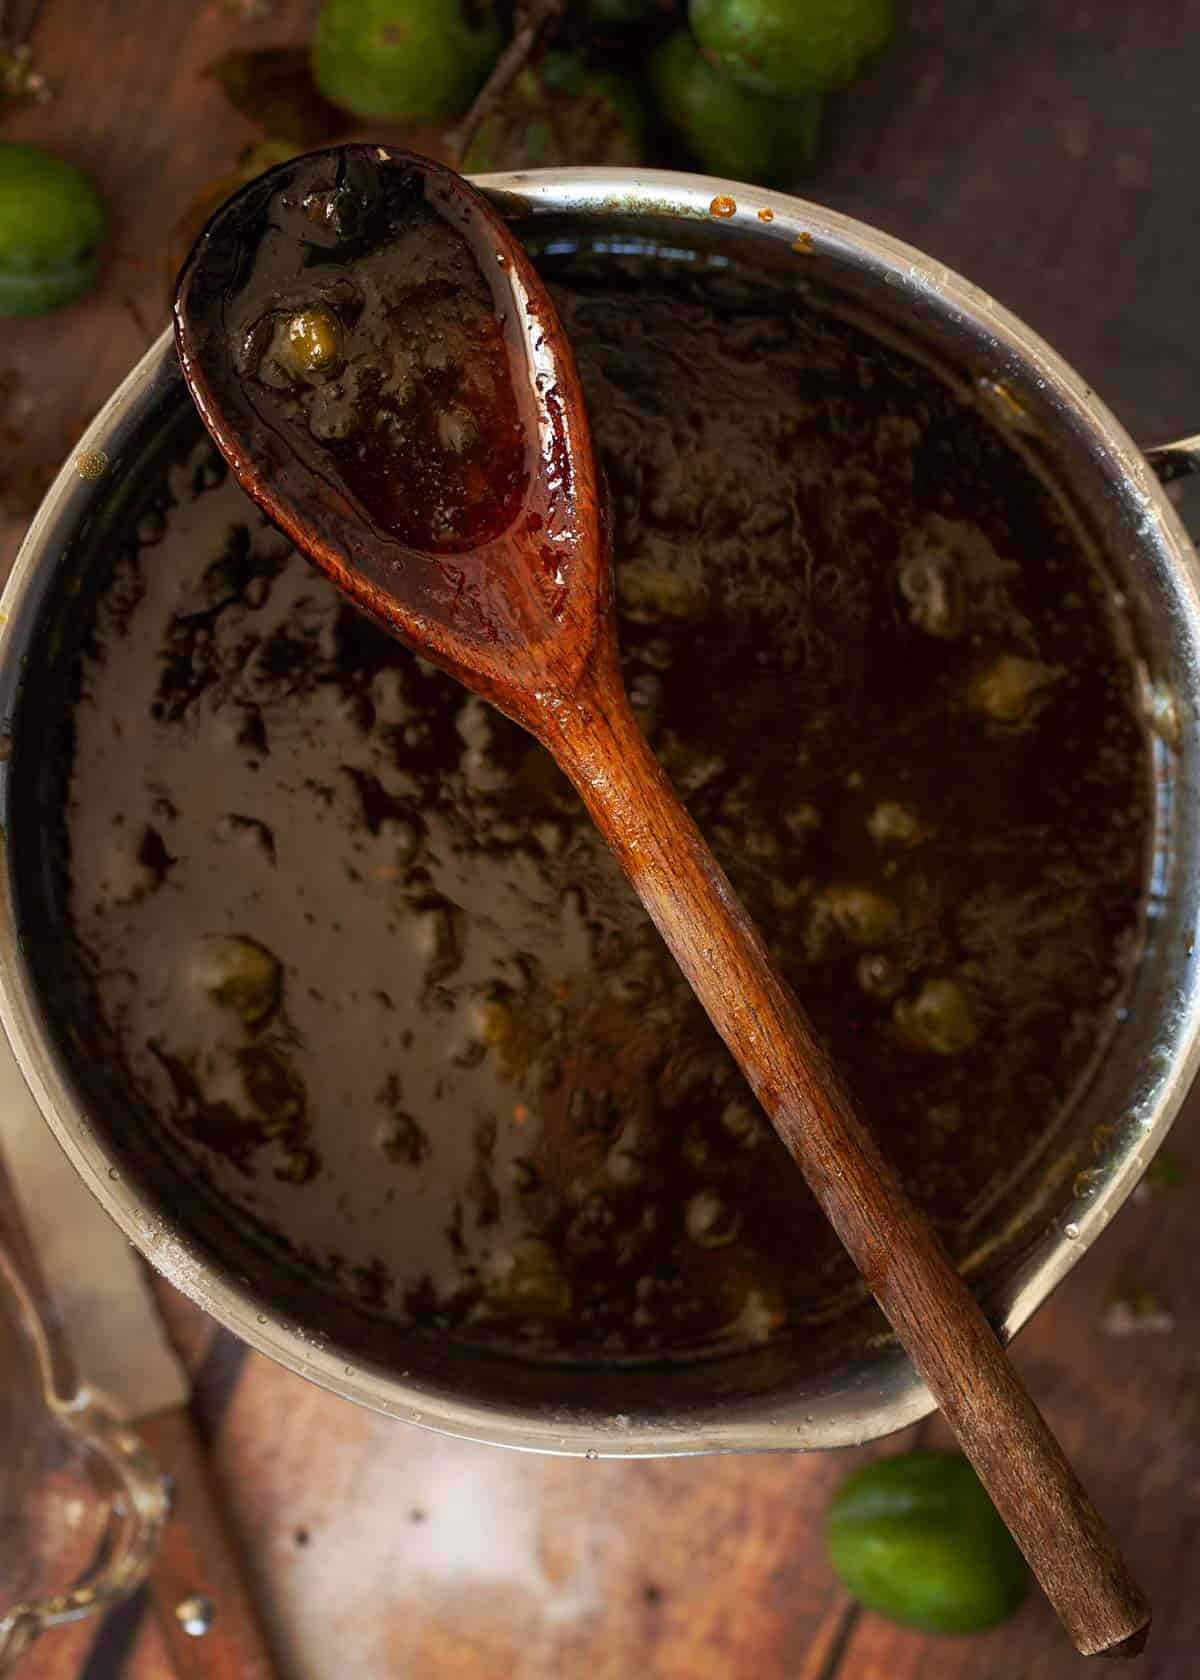 Process shot - cooked greengage jam in a saucepan with a wooden spoon resting on top